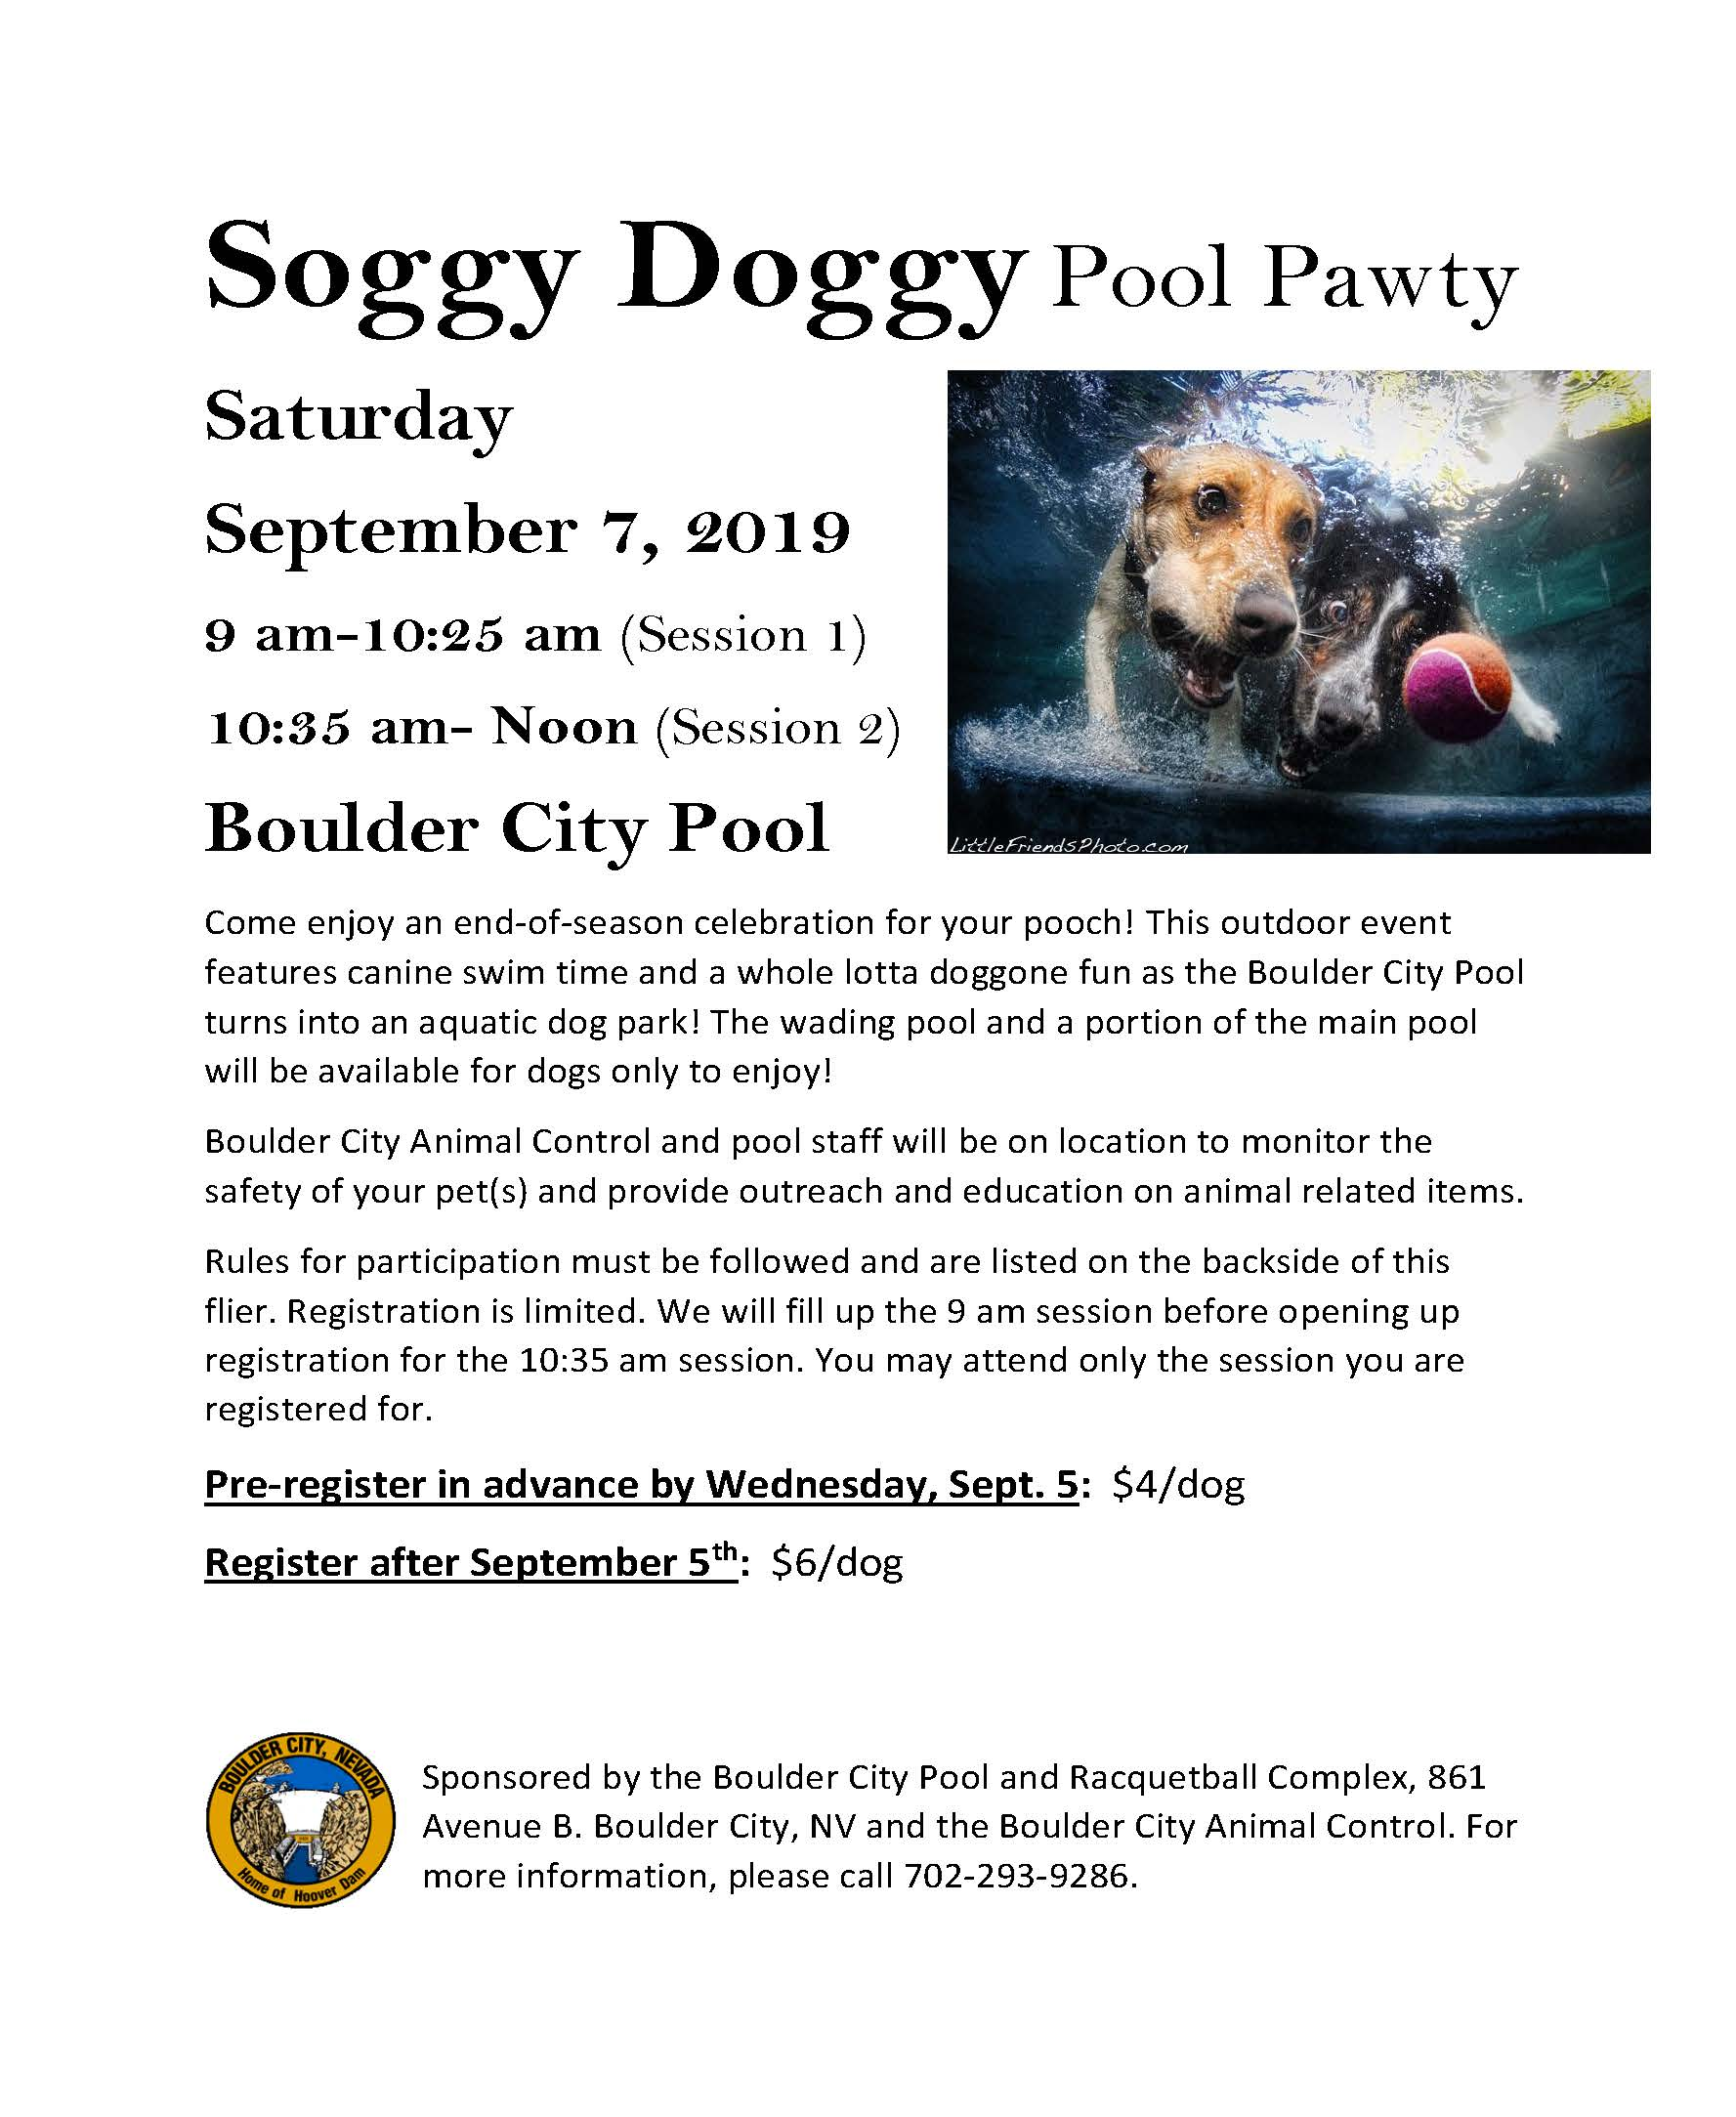 Soggy Doggy Pool Pawty 2019_Page_1